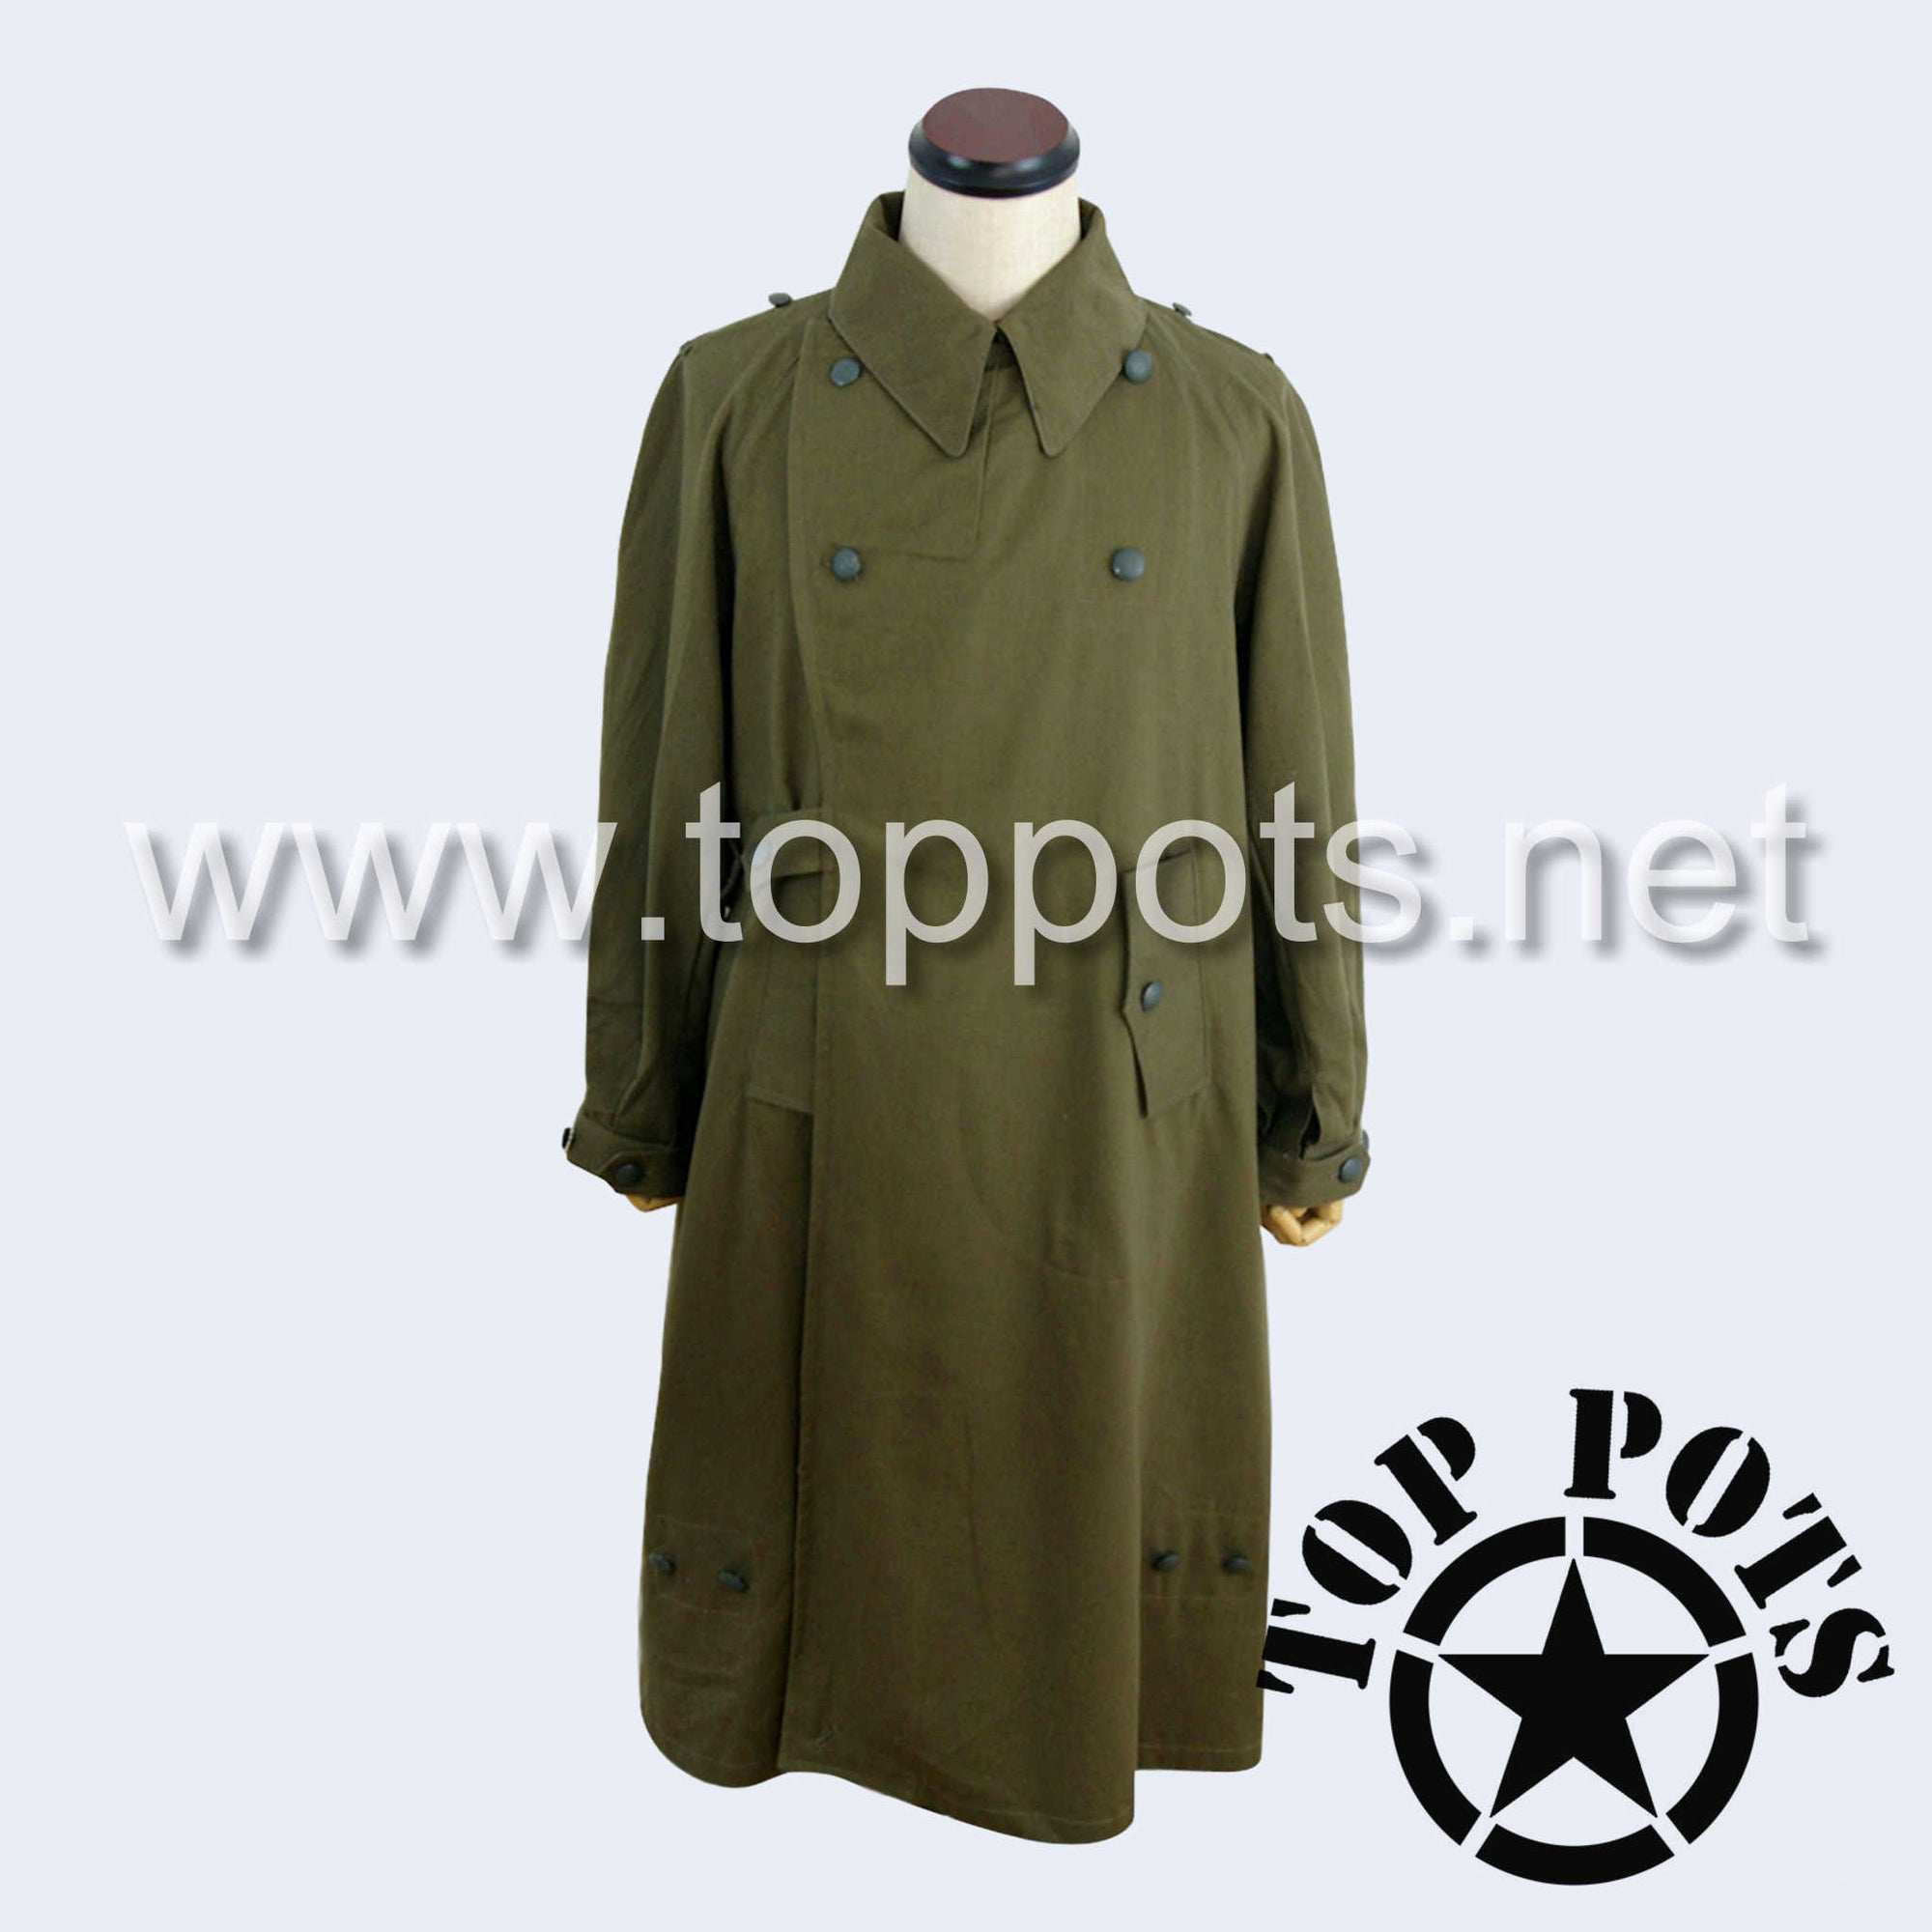 WWII German Army Waffen SS Uniform DAK Afrika Korps Tropical Motorcycle Overcoat Jacket - Olive Brown